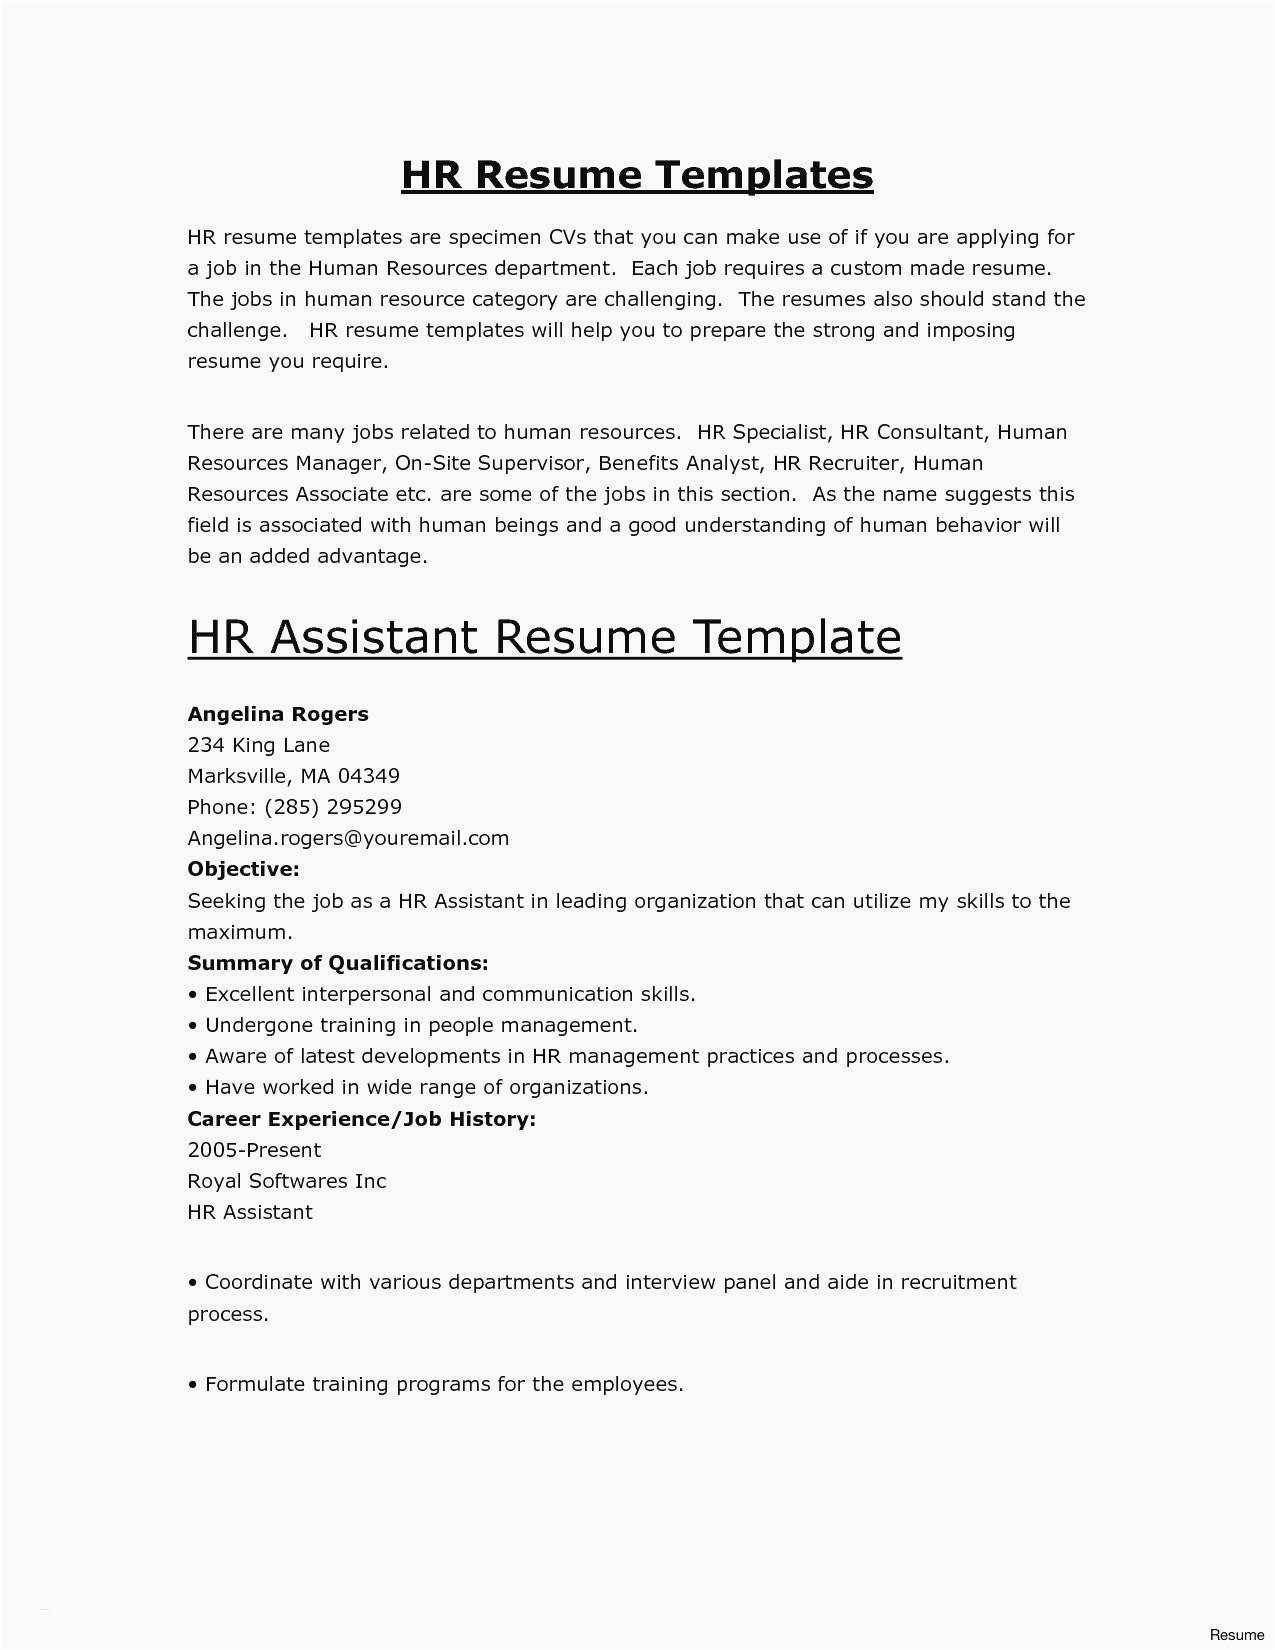 Resume Templates Samples Free